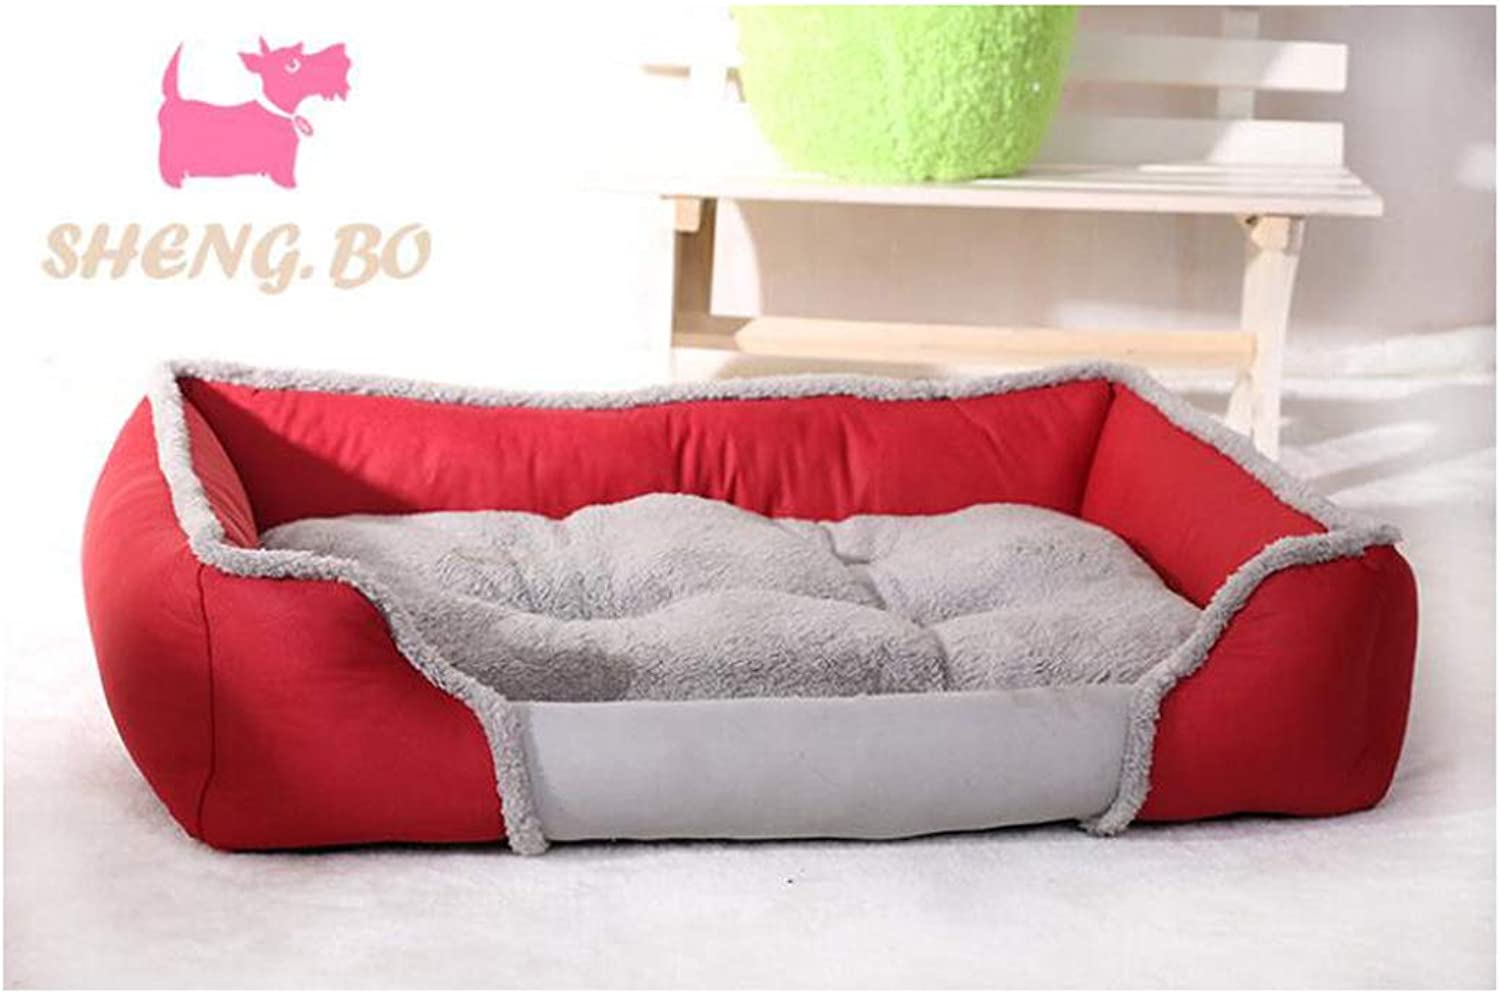 Hhrong Pet Nest Warm Padded Mat Bite Creative Bed Nonslip Breathable Latest Canvas Warm Pet Nest, Mattress Soft Warm (color   Red, Size   XL)